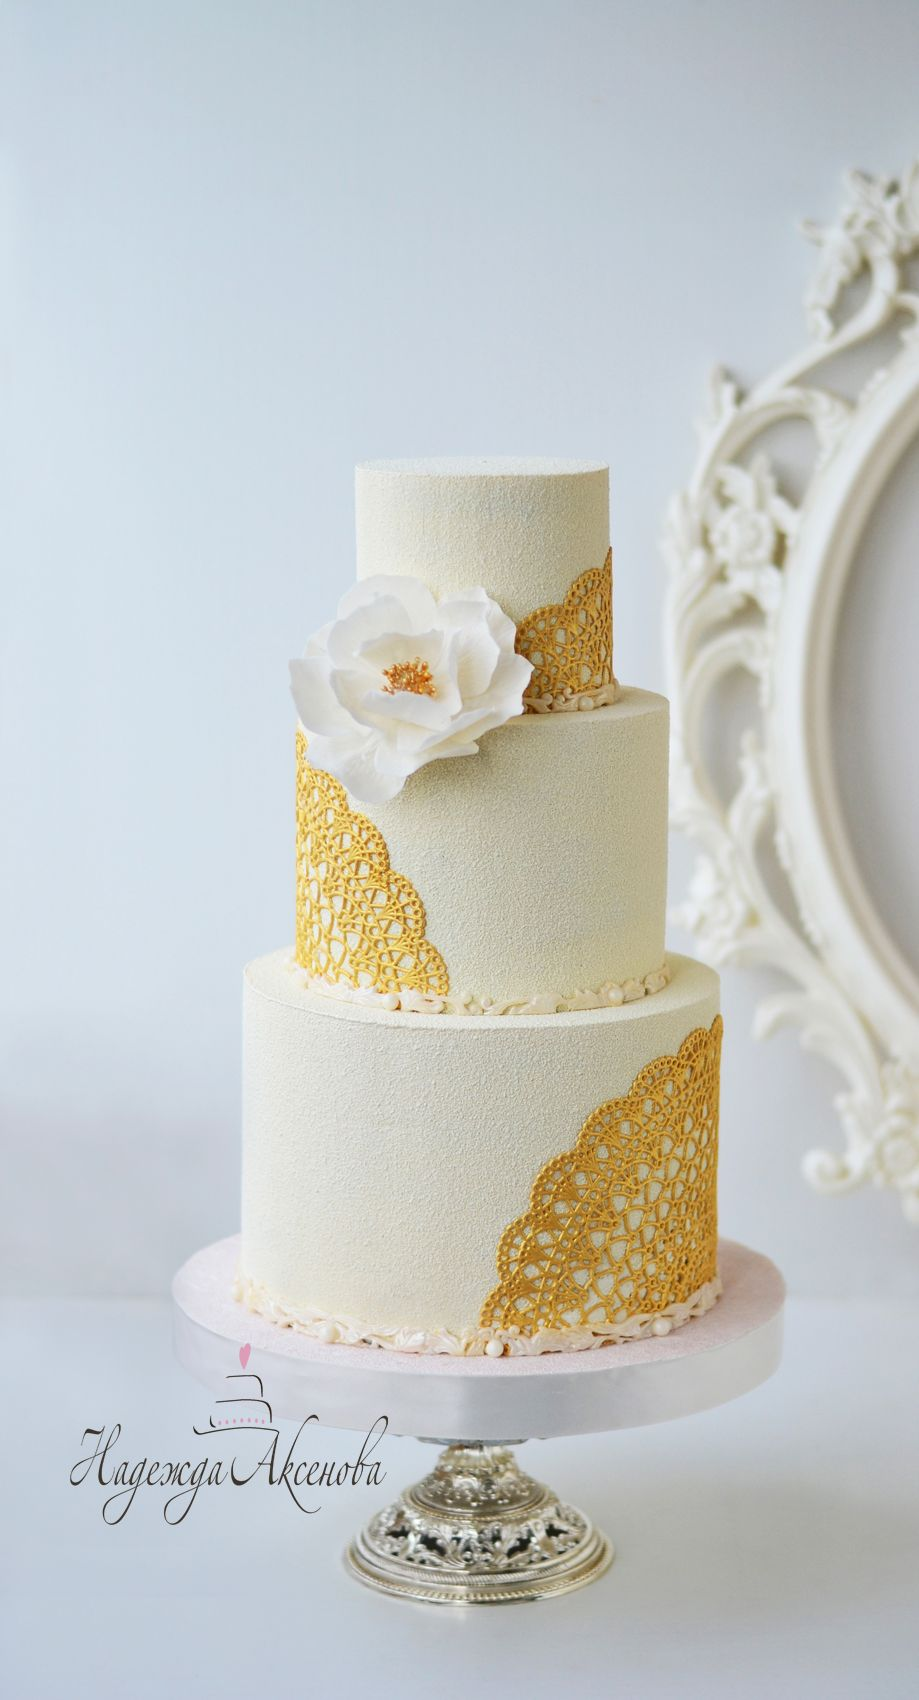 Wedding Cakes in Chocolate .wedding cake cover- chocolate velvet . Chocolate velvet texture White and Gold Cake